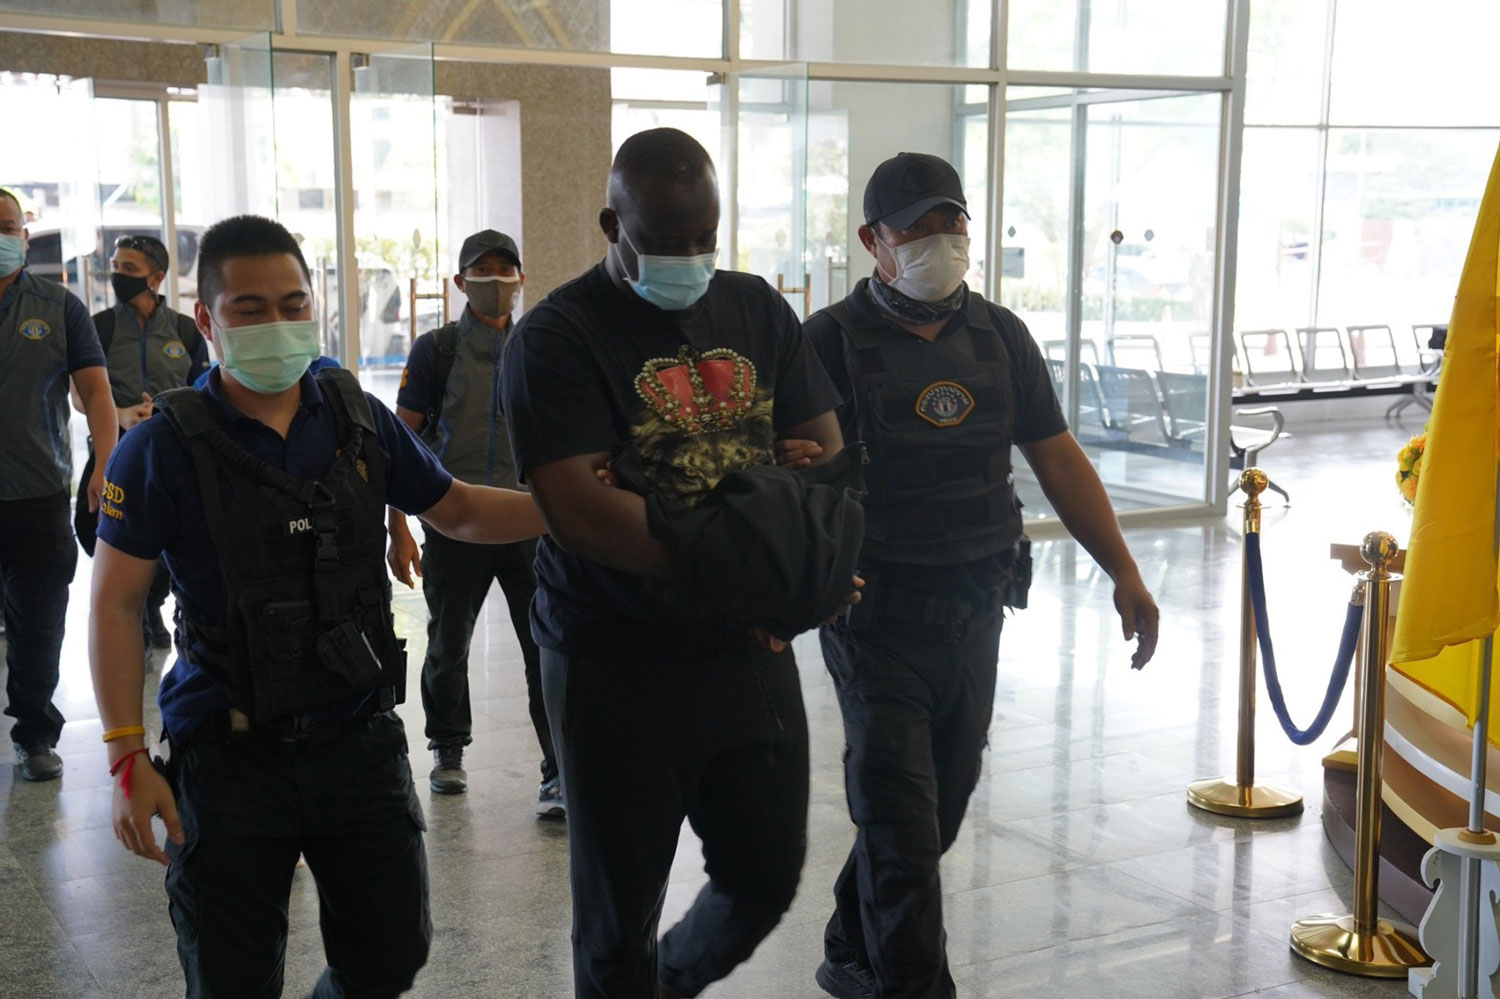 Nigerian Ezeneche Uzochukwu Jorome (centre), an alleged leader of a romance scam, is taken into custody by Crime Suppression Division police on Monday. (Crime Suppression Division photo)